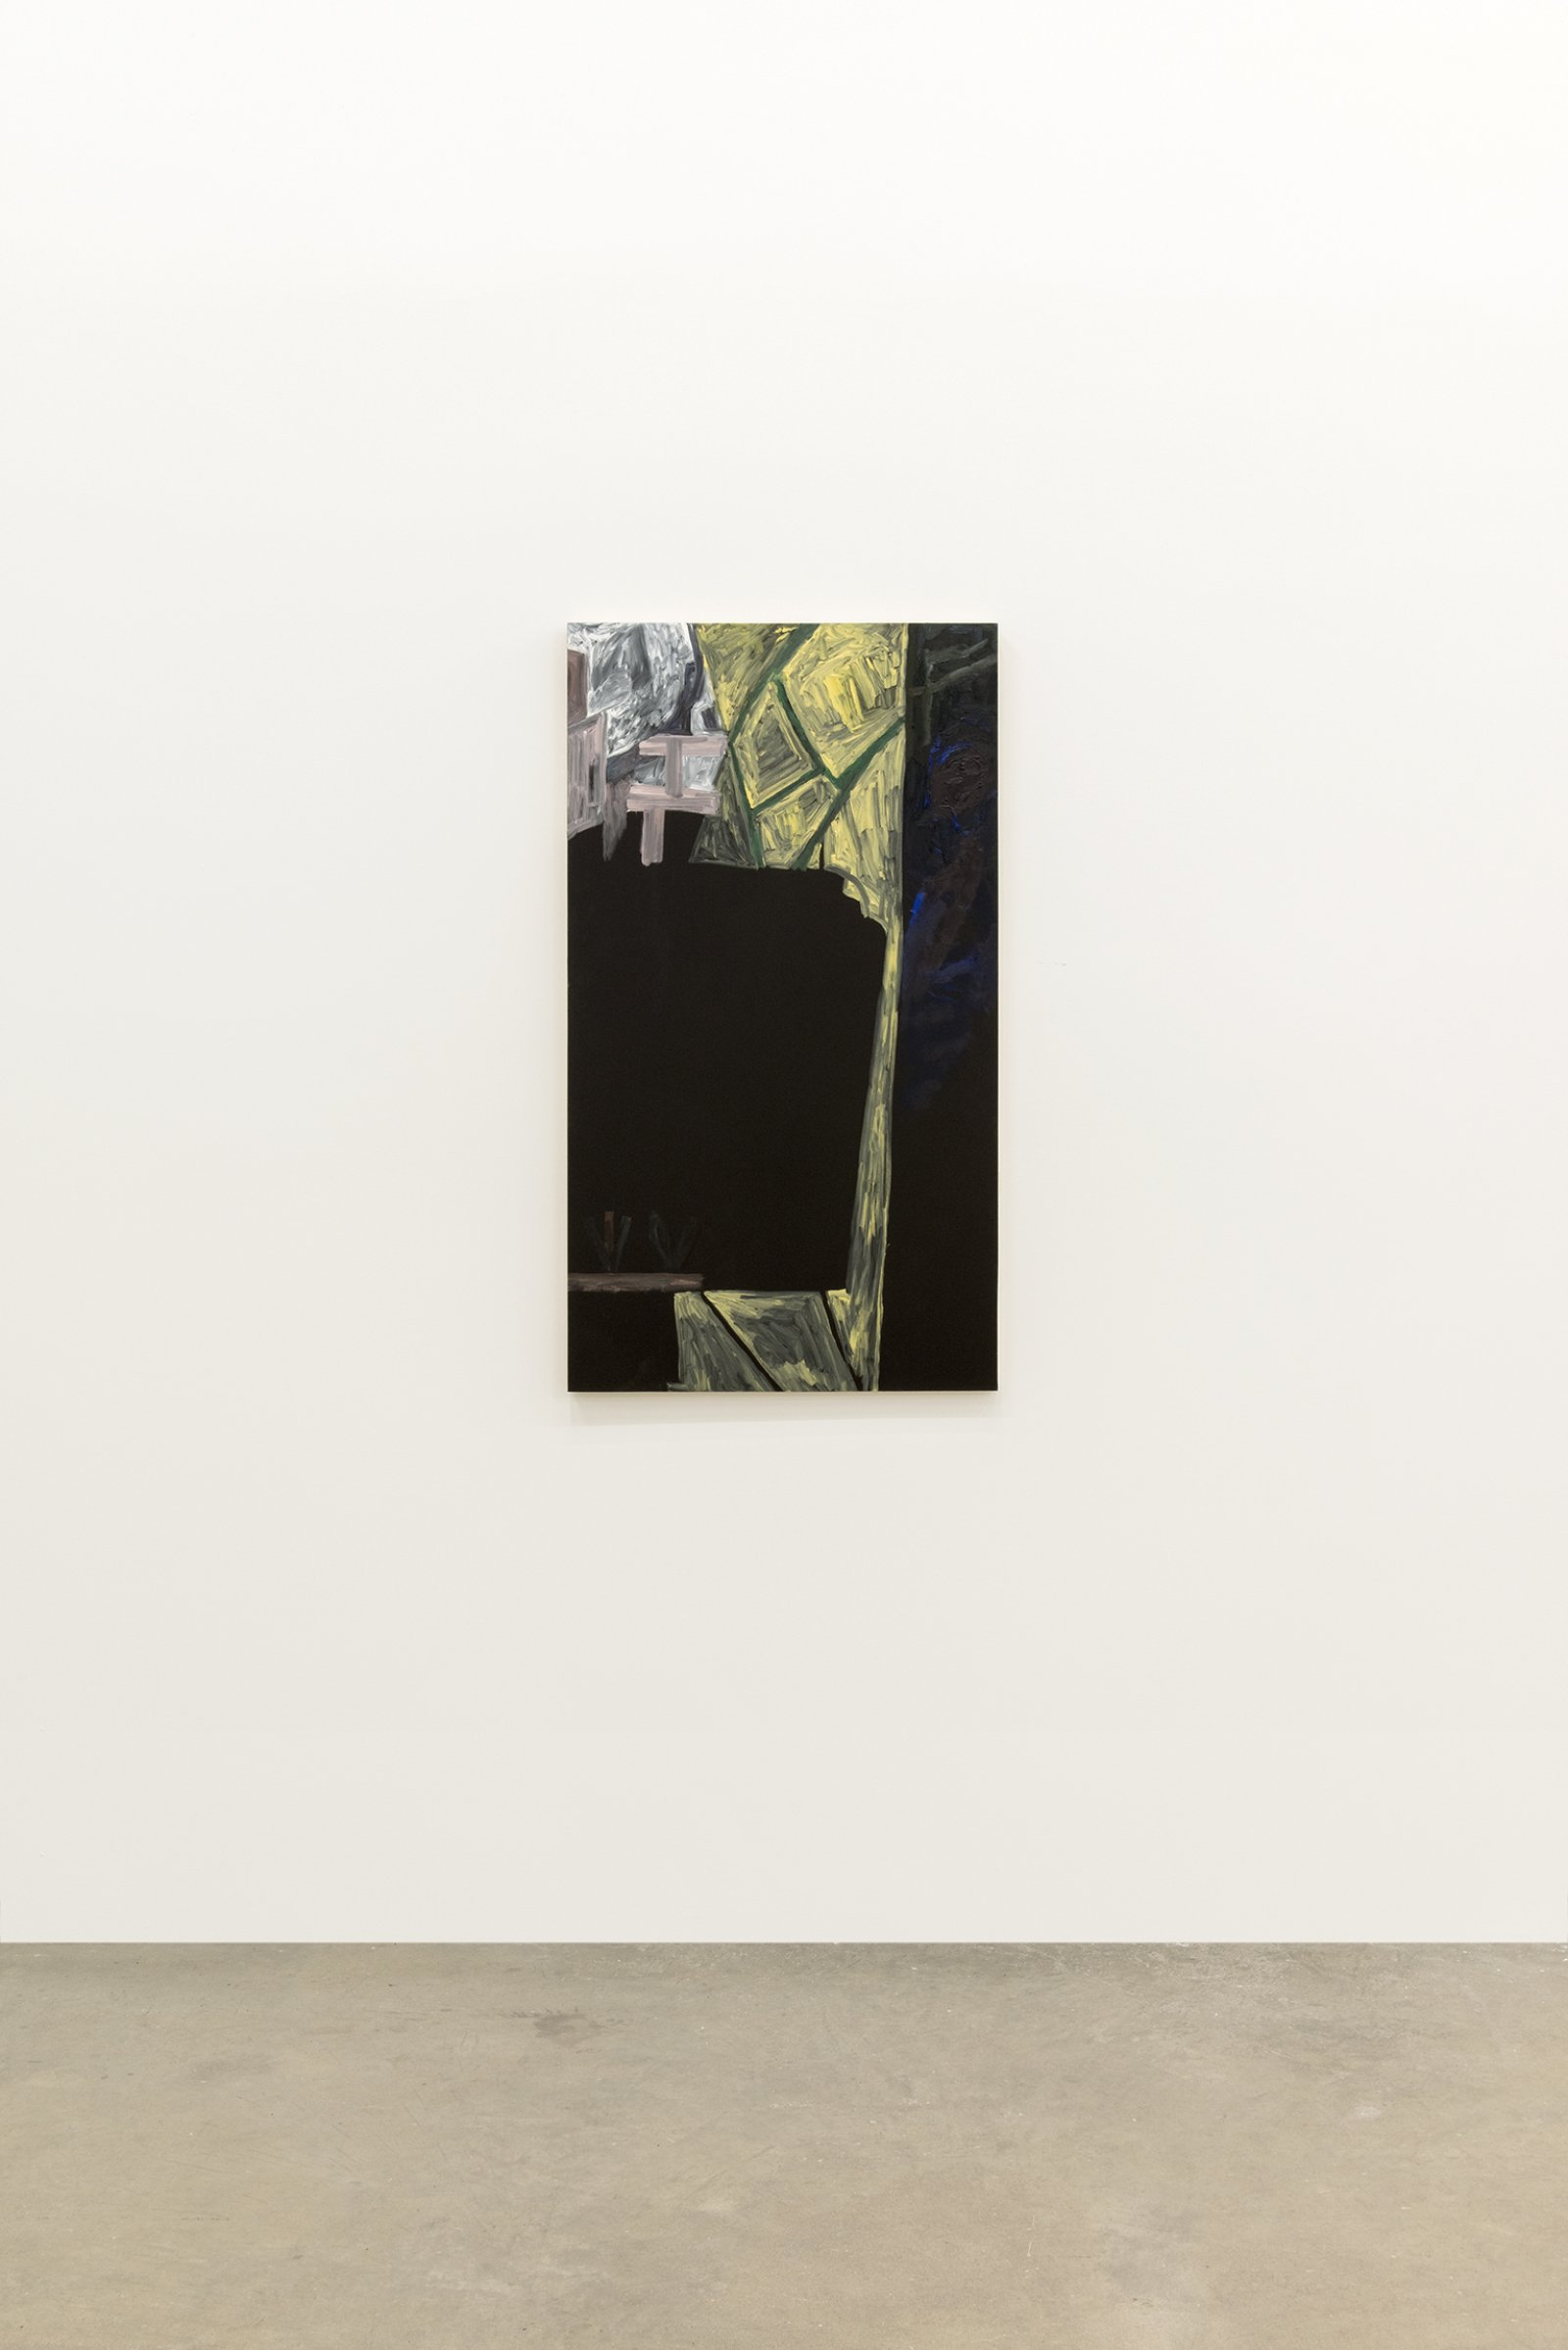 Rebecca Brewer, Backwards Glass, 2014, oil on panel, 42 x 24 in. (107 x 60 cm)